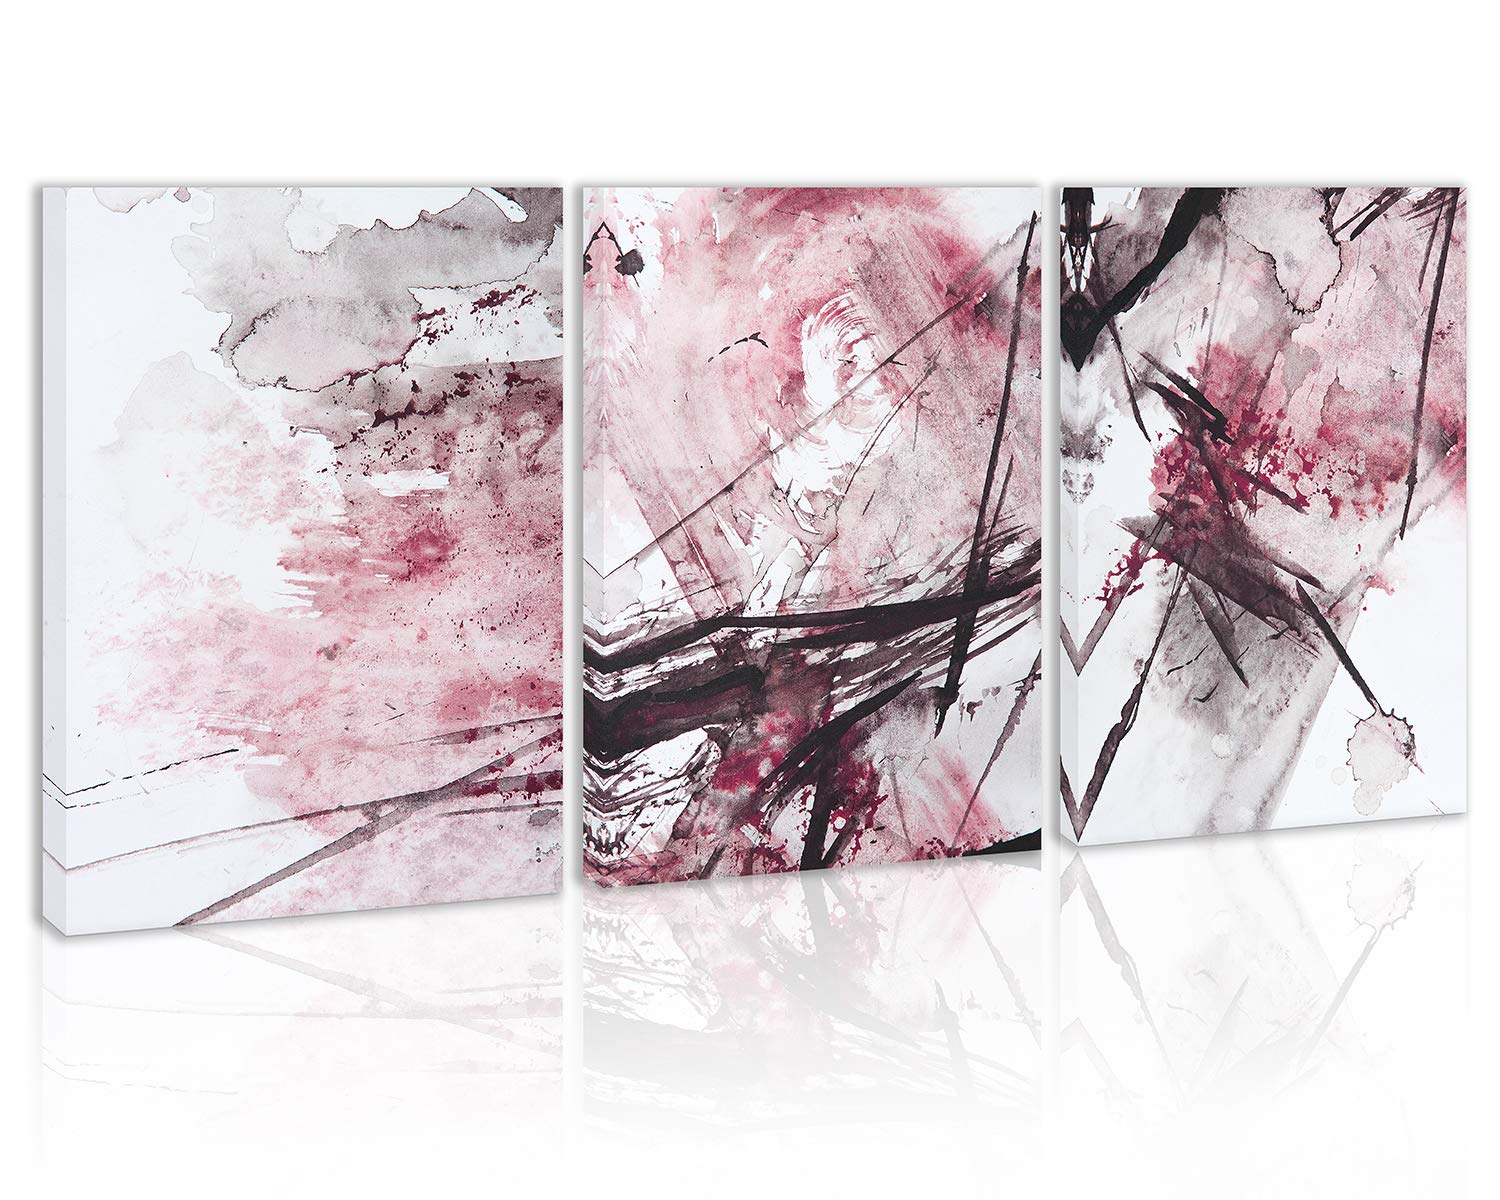 Modern Abstract Wall Art Decor Pink Black and White Canvas Painting Kitchen Prints Pictures for Home Living Dining Room